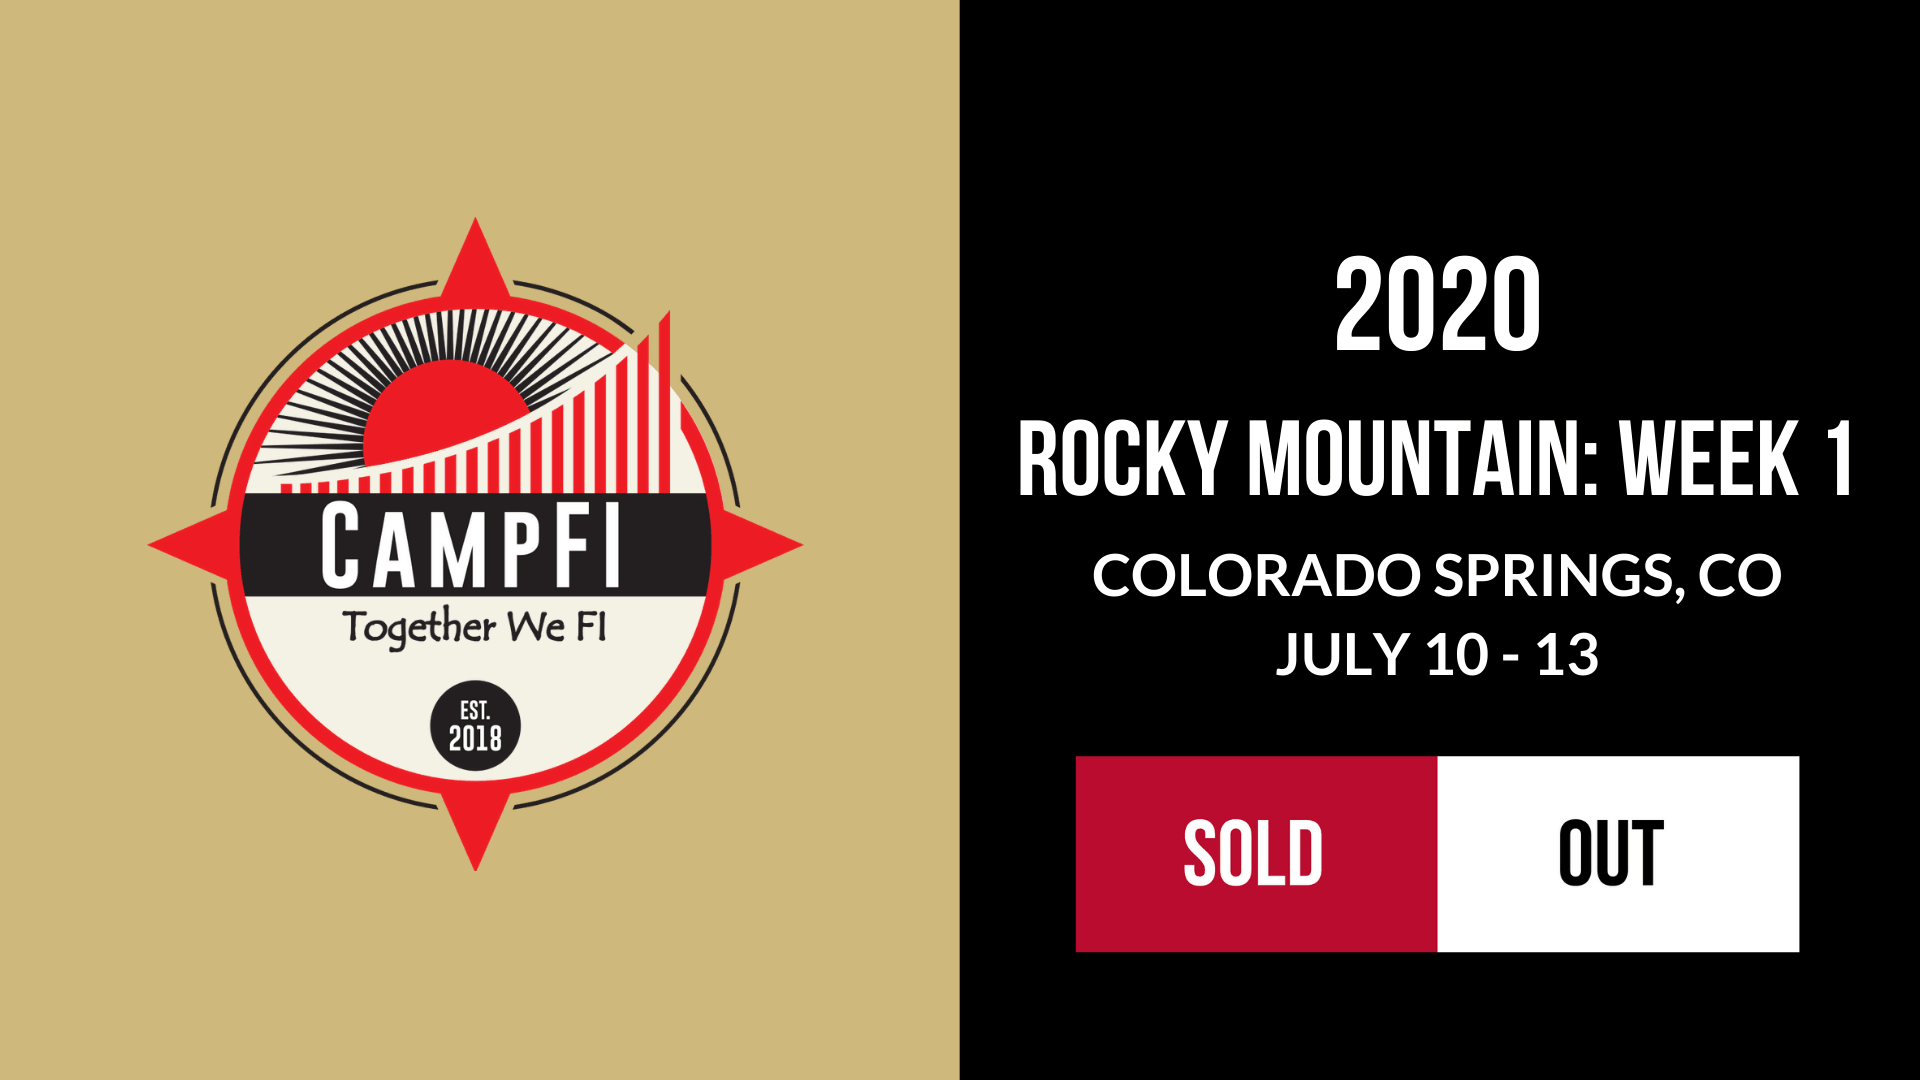 CampFI Rocky Mountain: Week 1 - Sold Out - Fiology